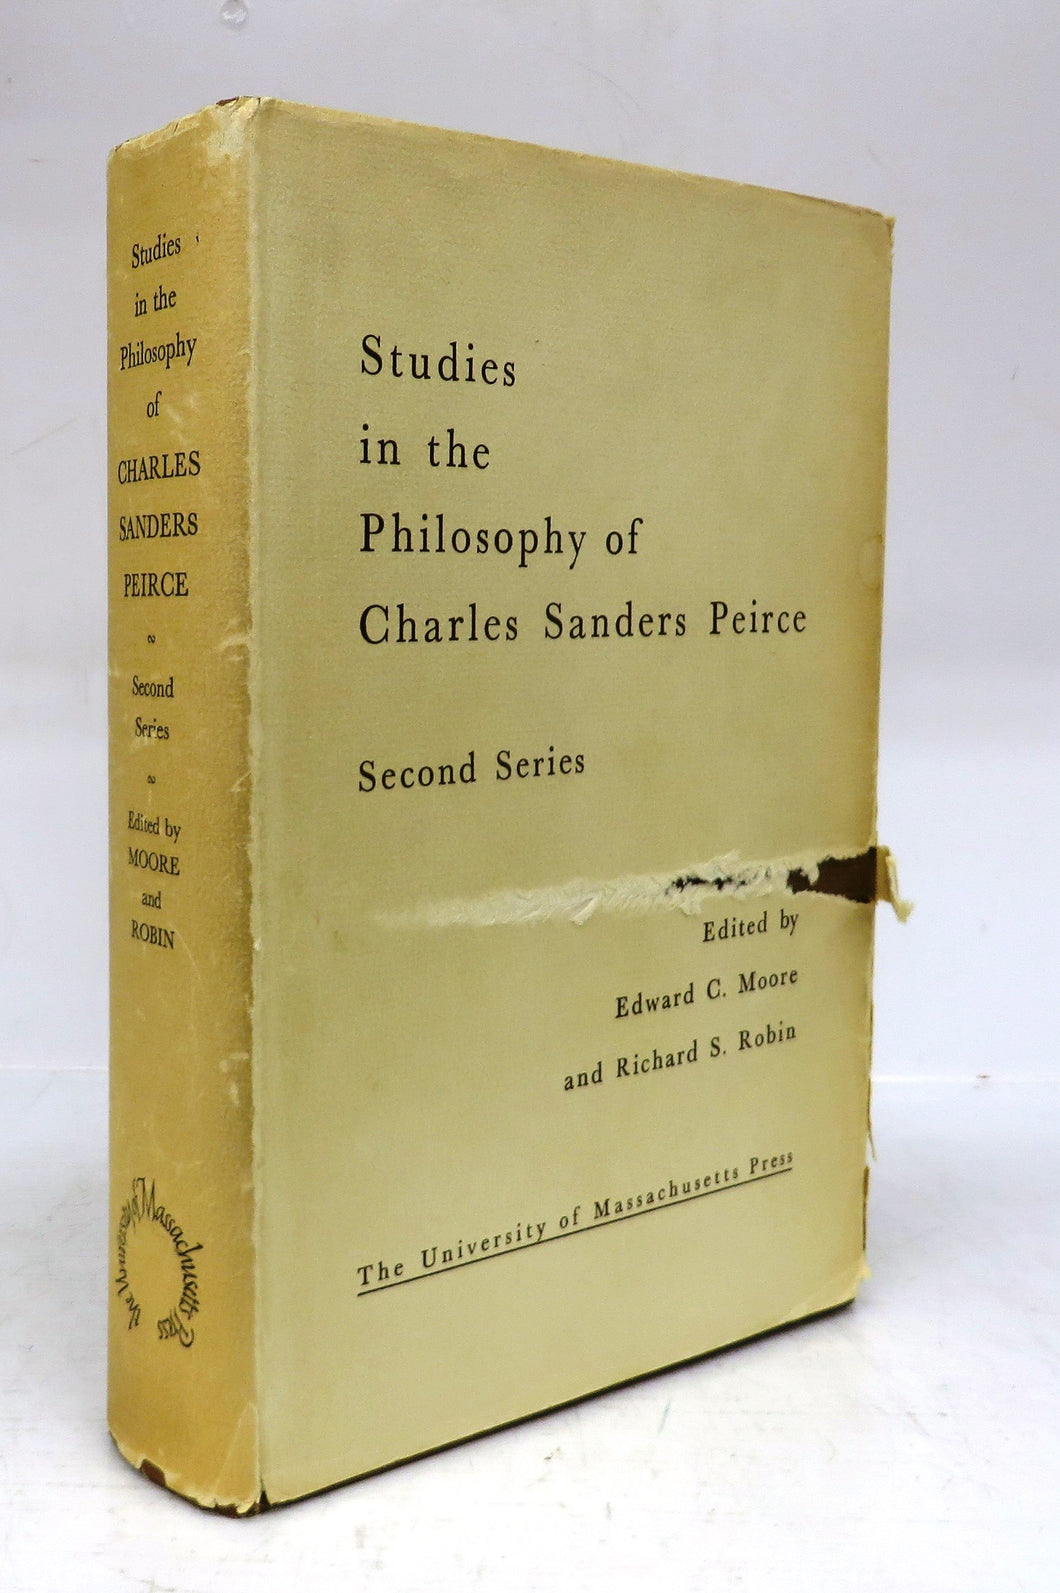 Studies in the Philosophy of Charles Sanders Peirce